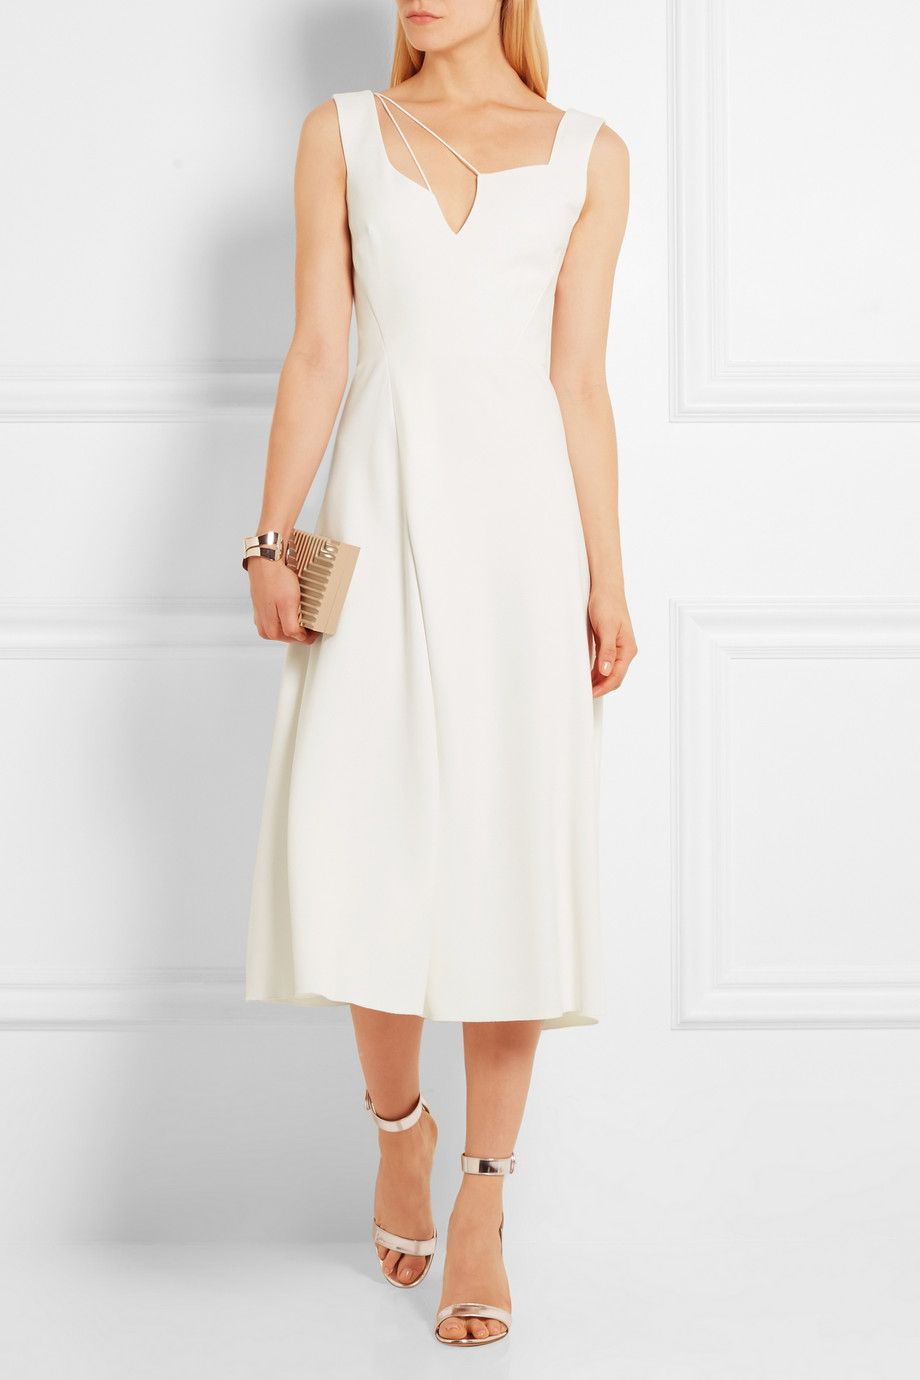 Victoria Beckham | Flared crepe dress | NET-A-PORTER.COM